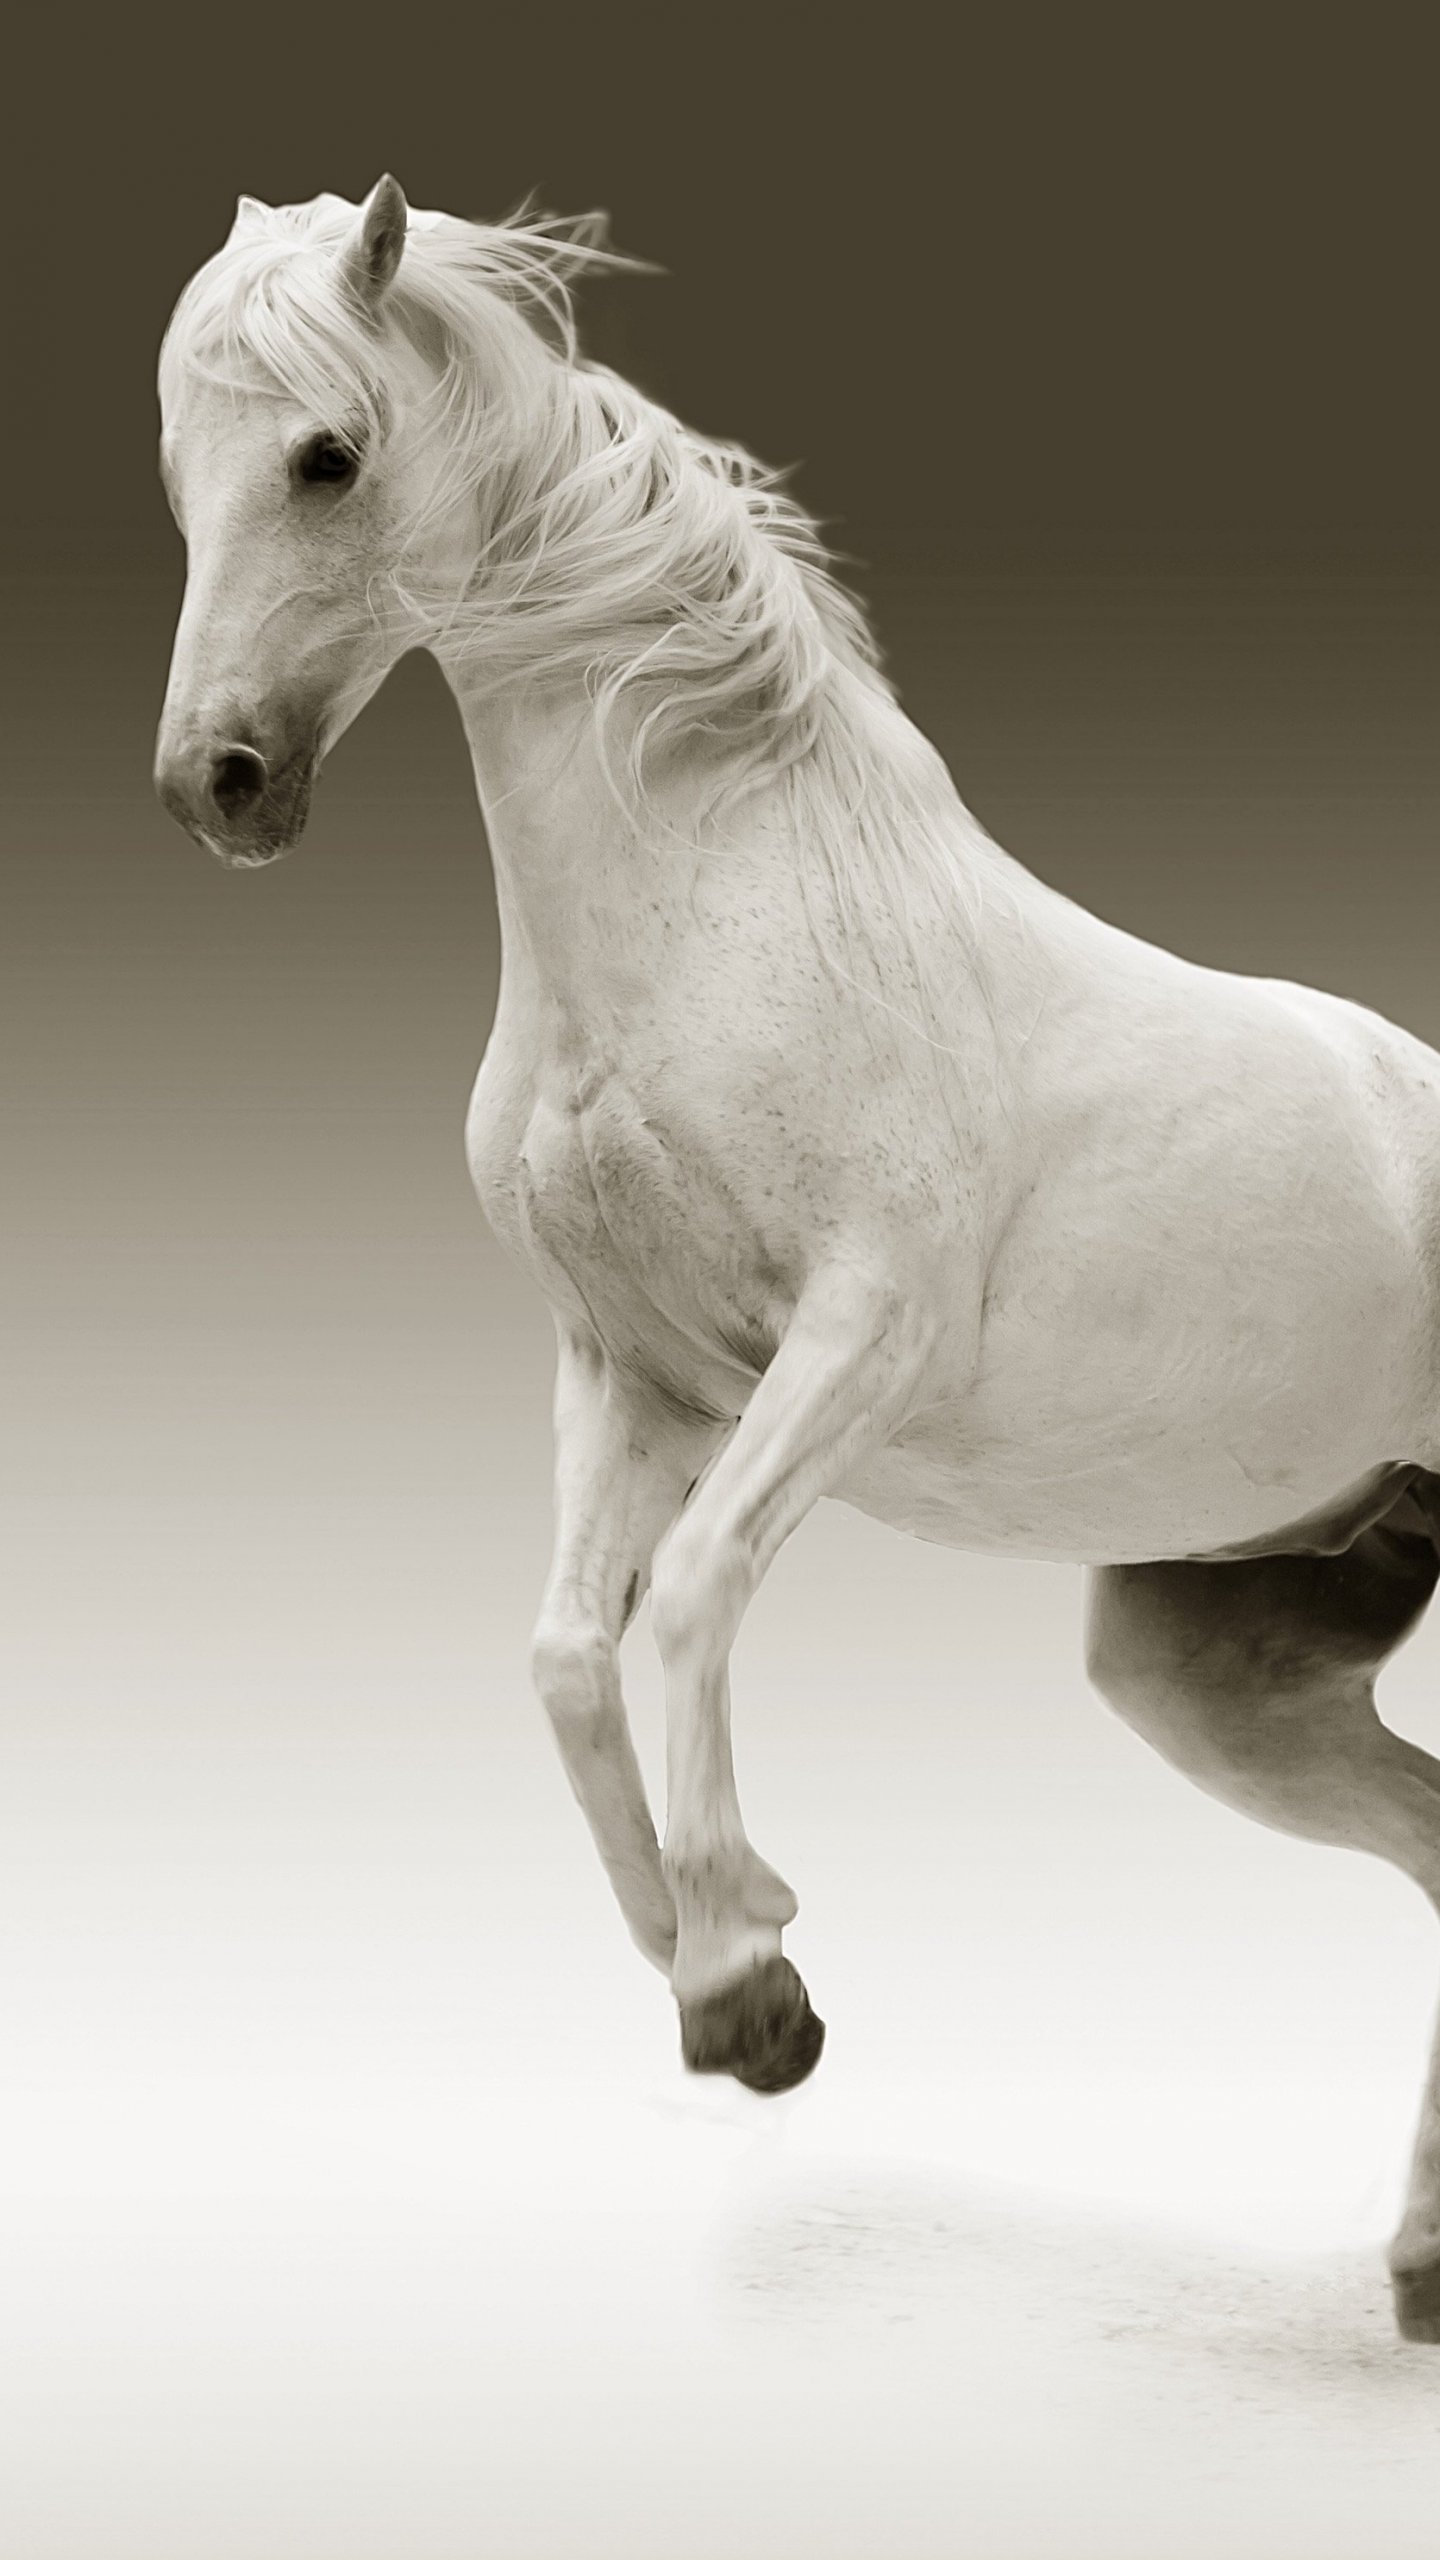 Image Result For Free Wallpaper Horses Hd